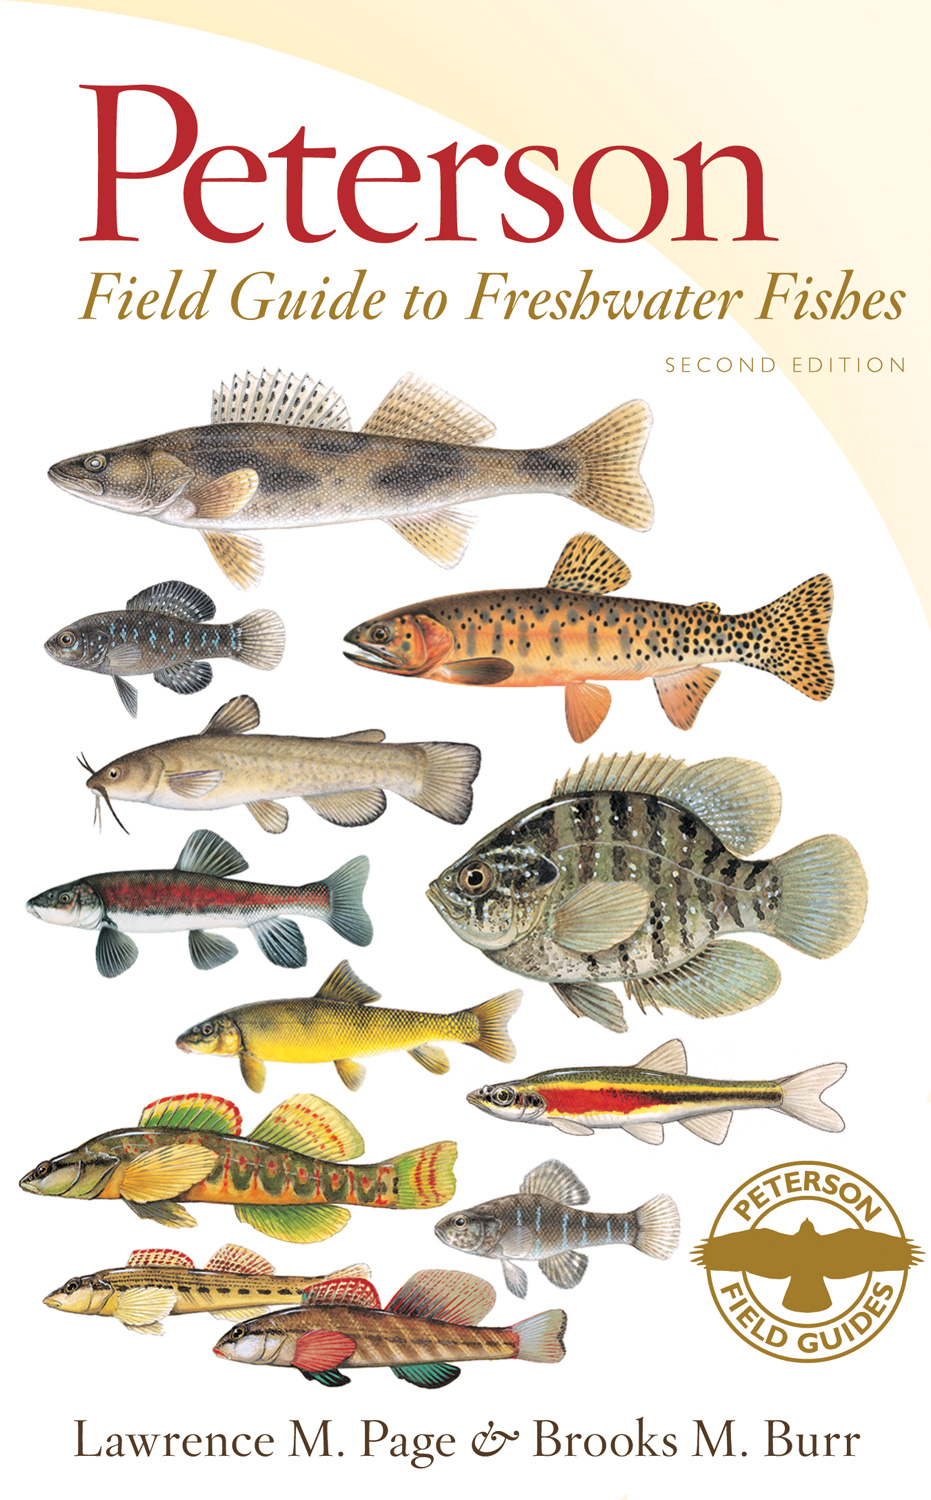 Peterson Field Guide to Freshwater Fishes, Second Edition-9780547242064